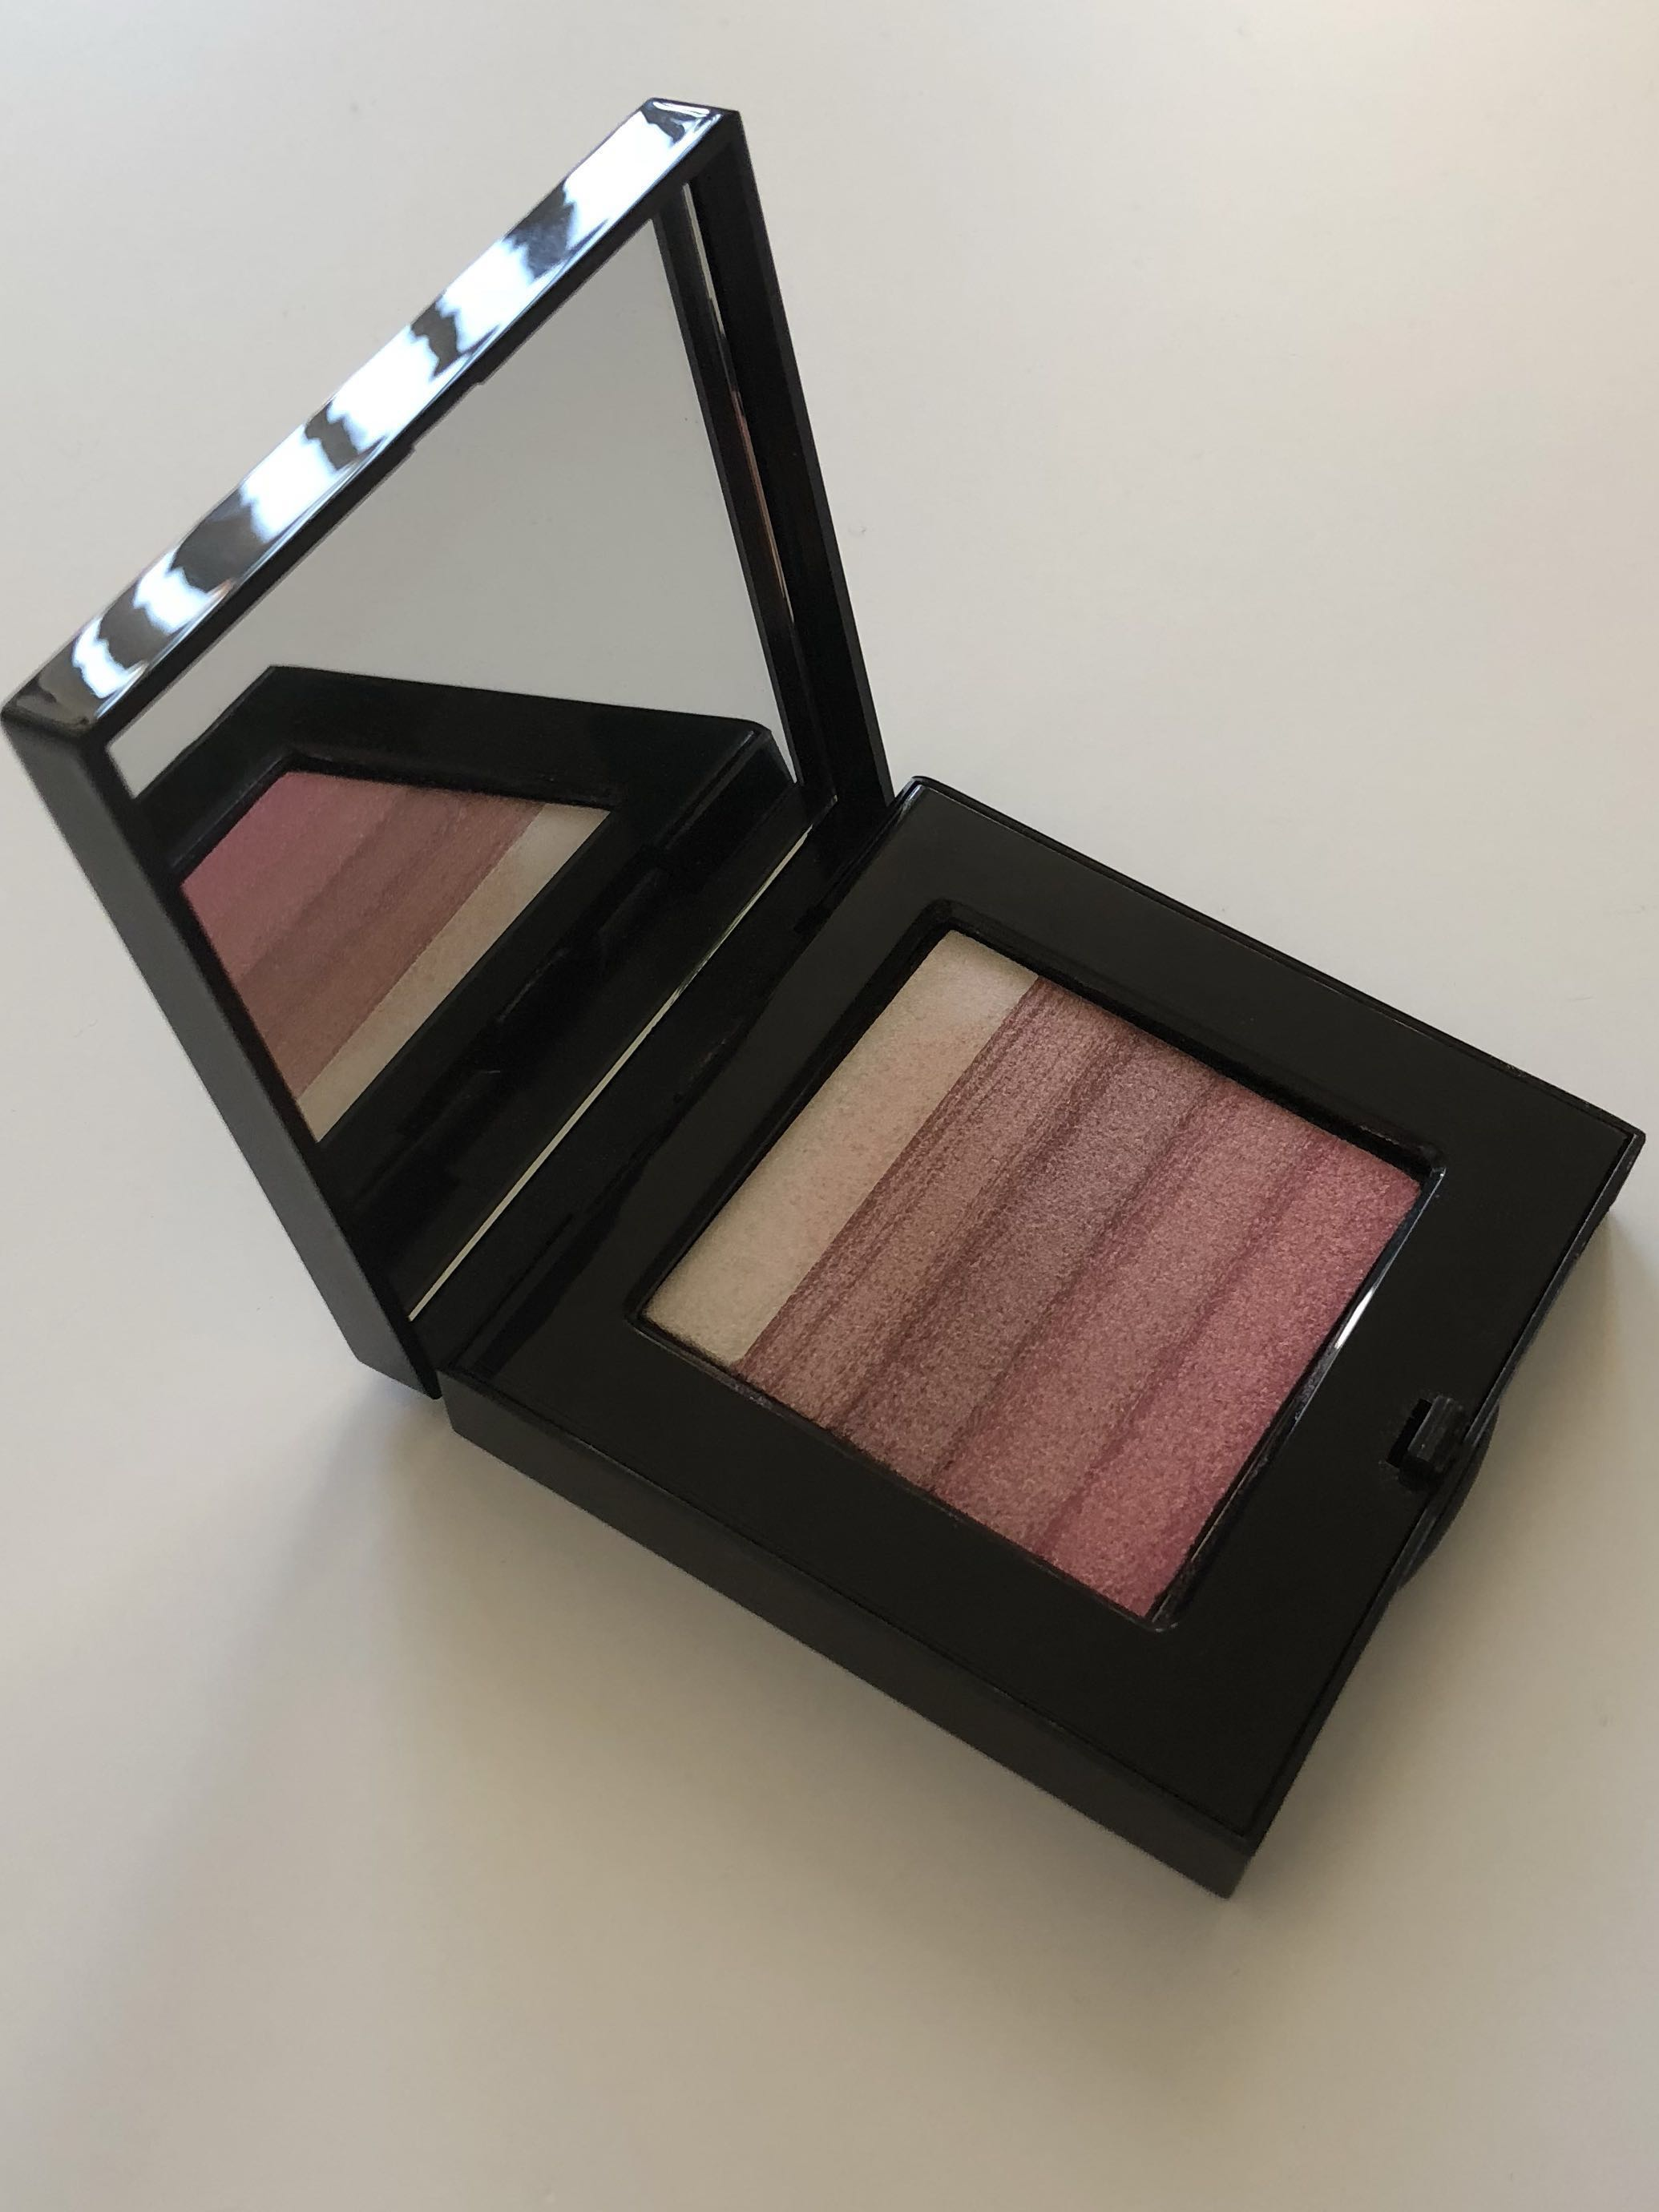 Authentic Bobbi Brown Shimmer Brick Compact Rose